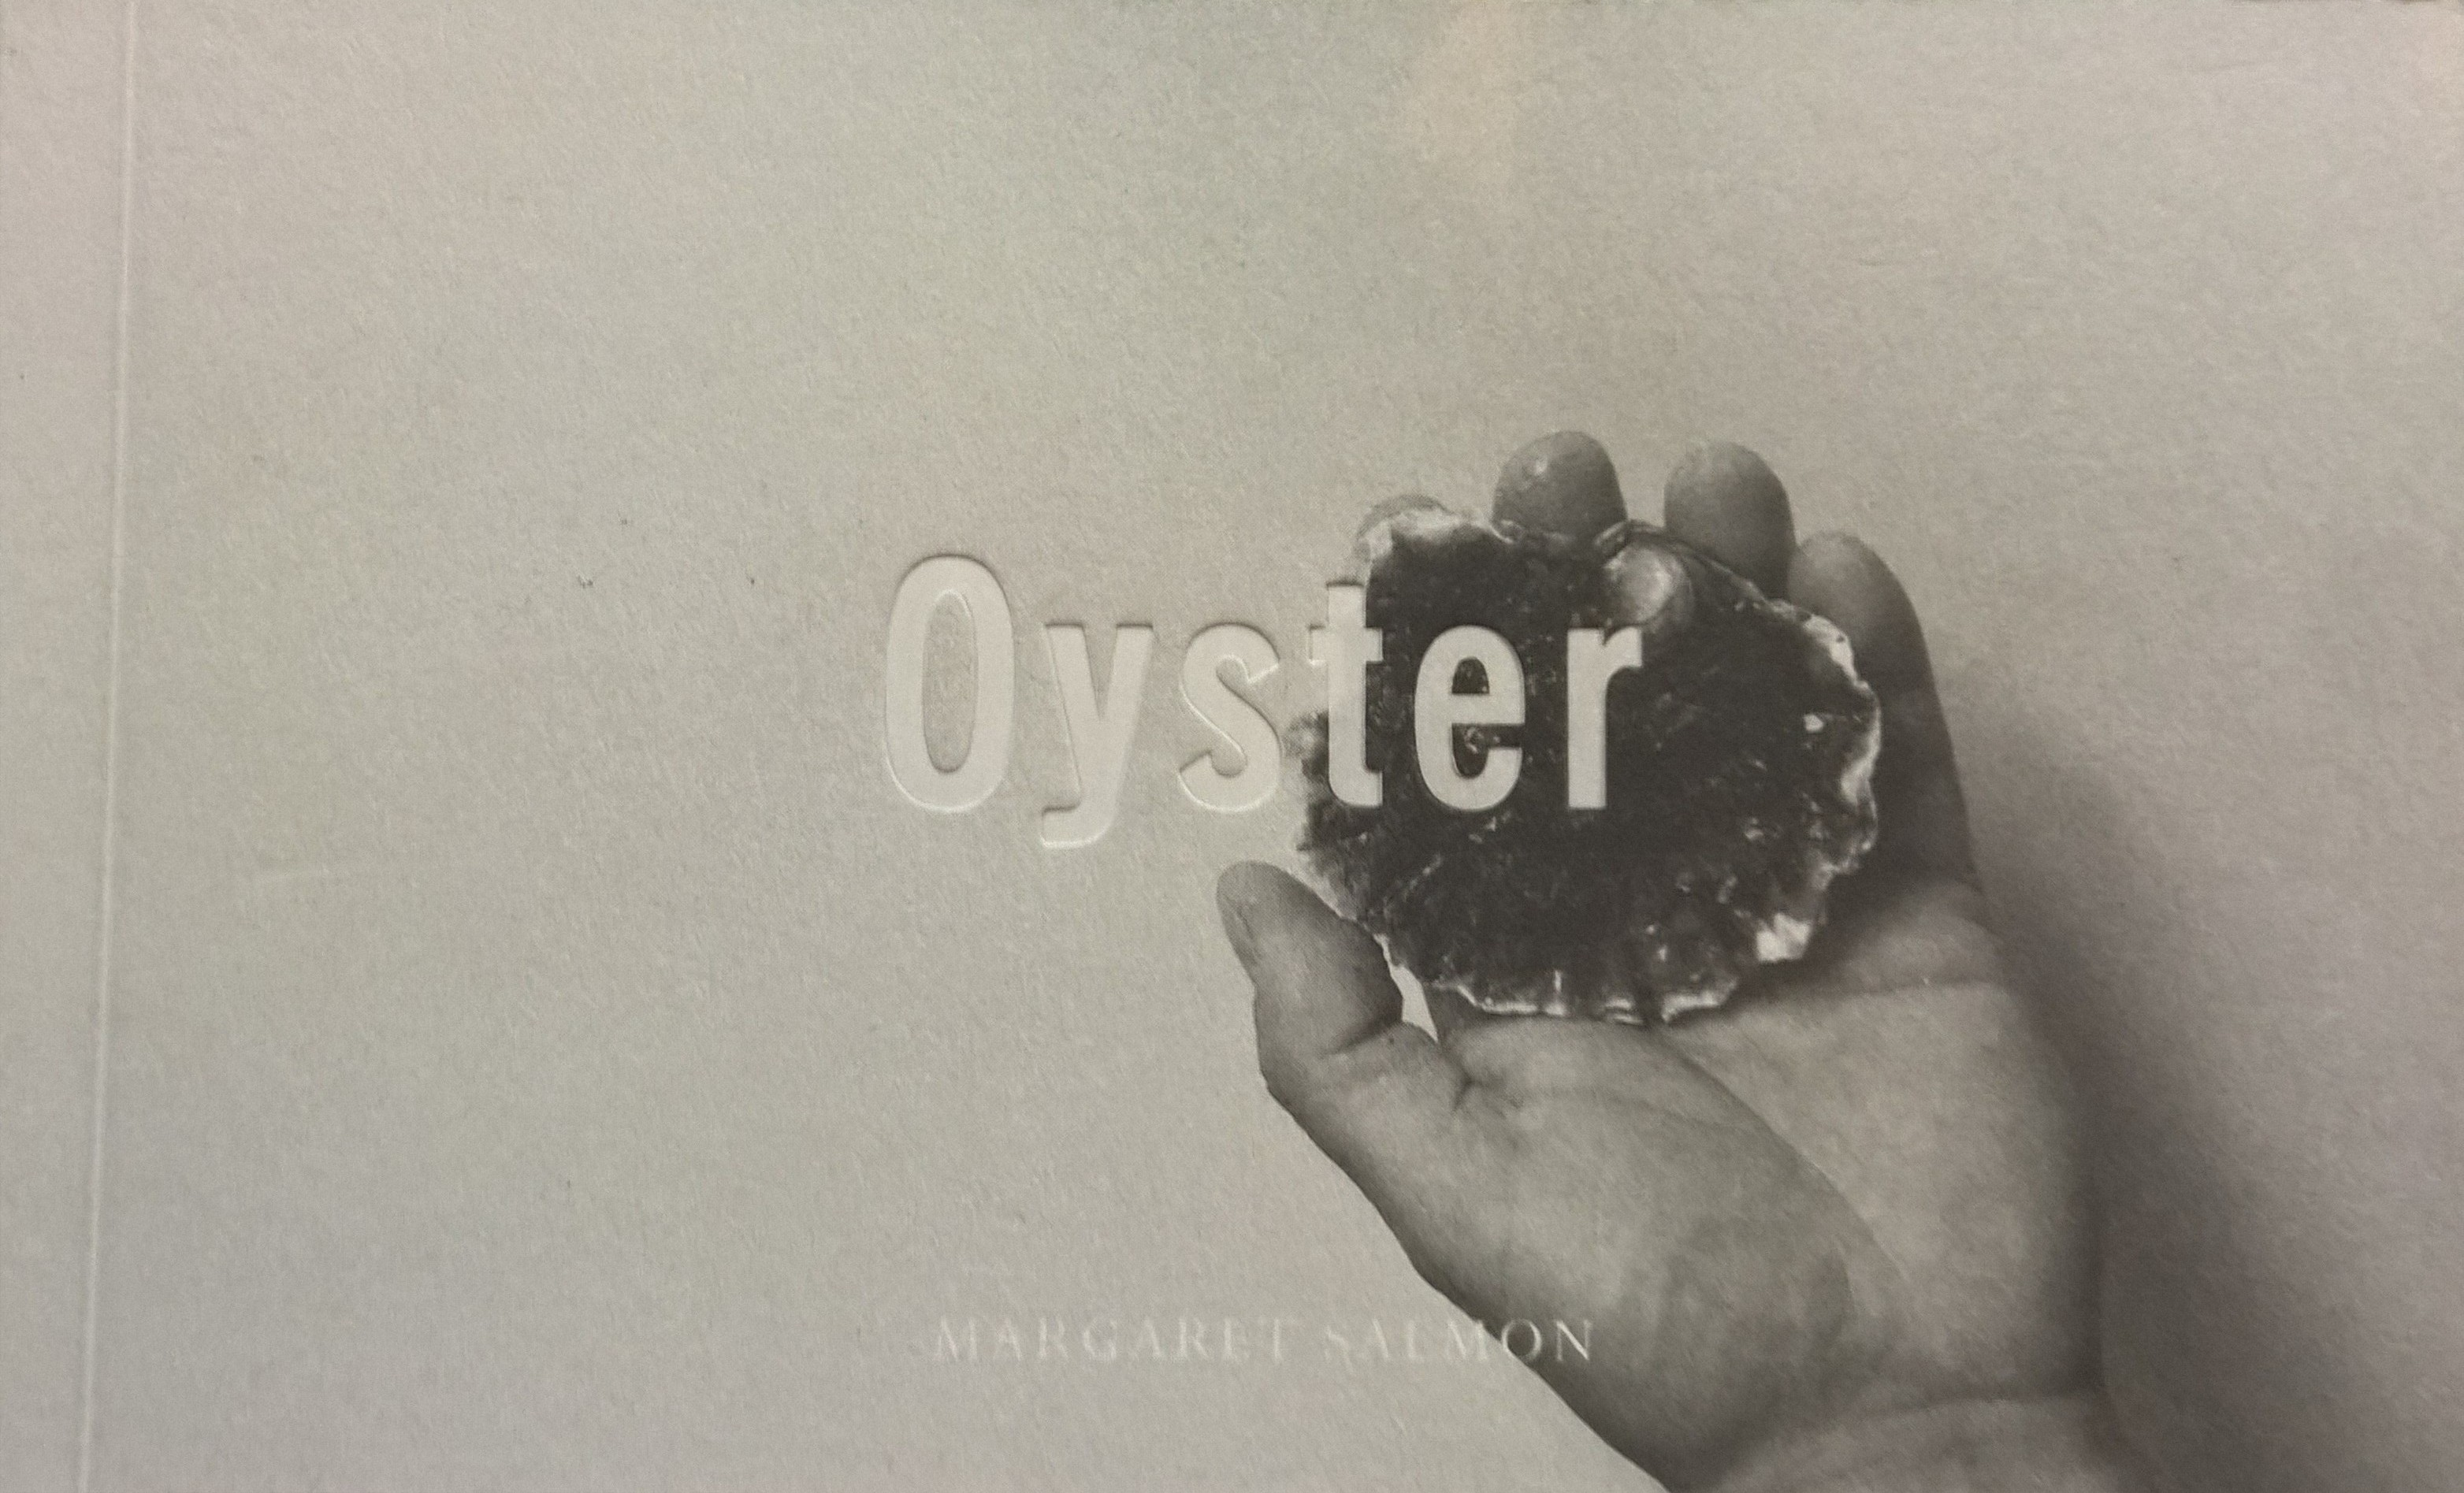 Buy Oyster - Flipbook